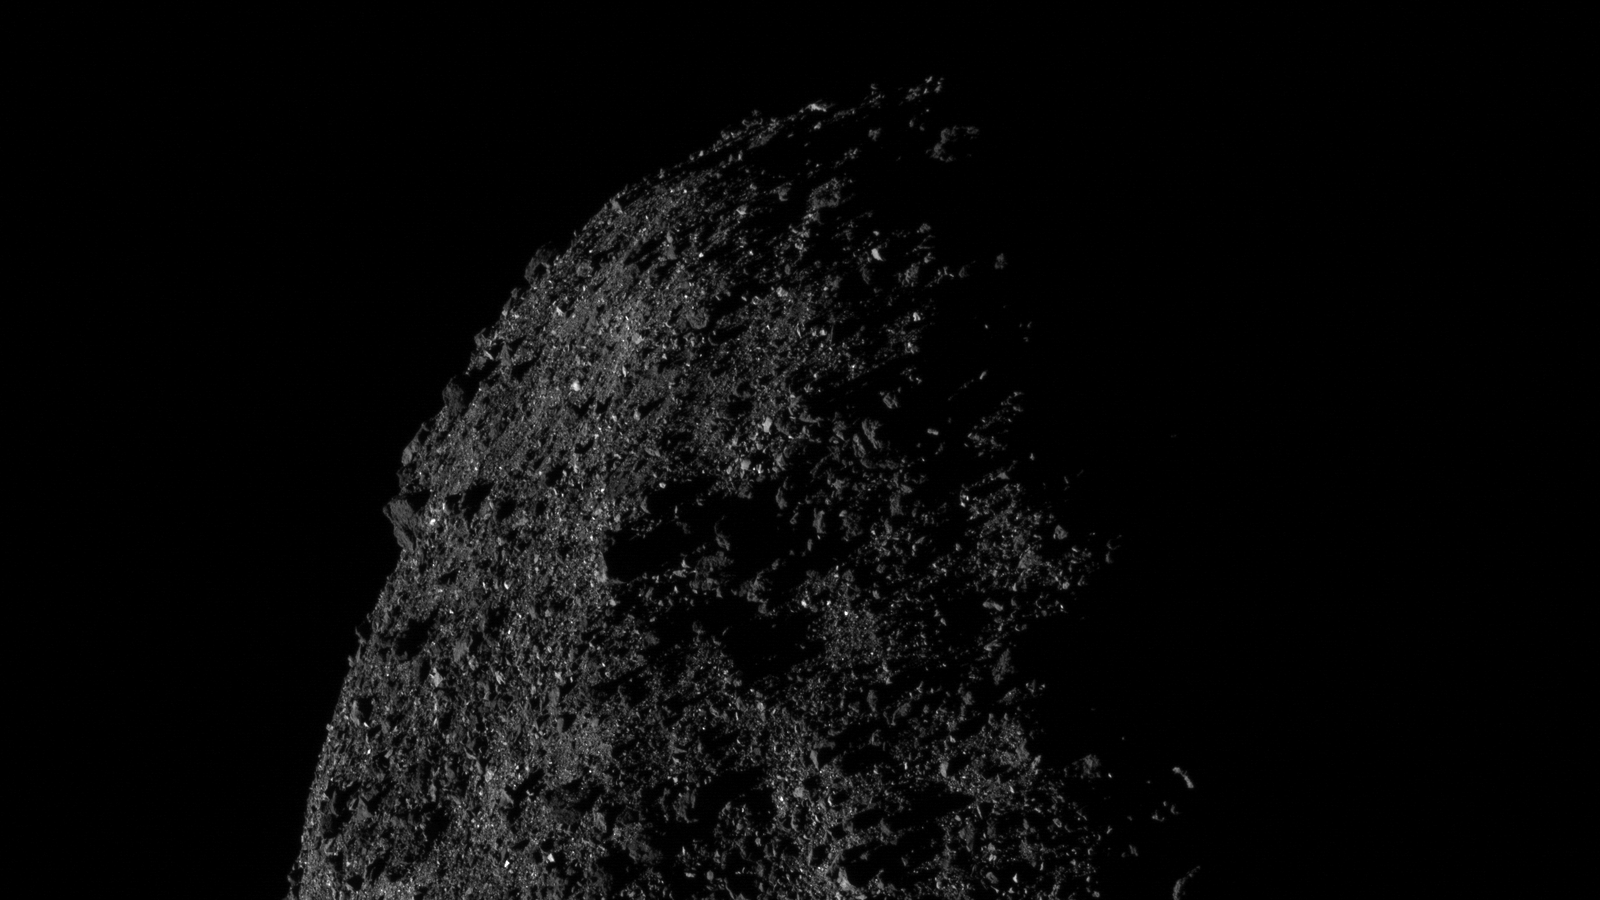 NASA's OSIRIS-REx Spacecraft Takes Stunning Photo of Asteroid Bennu From Just 0.4 Miles Away